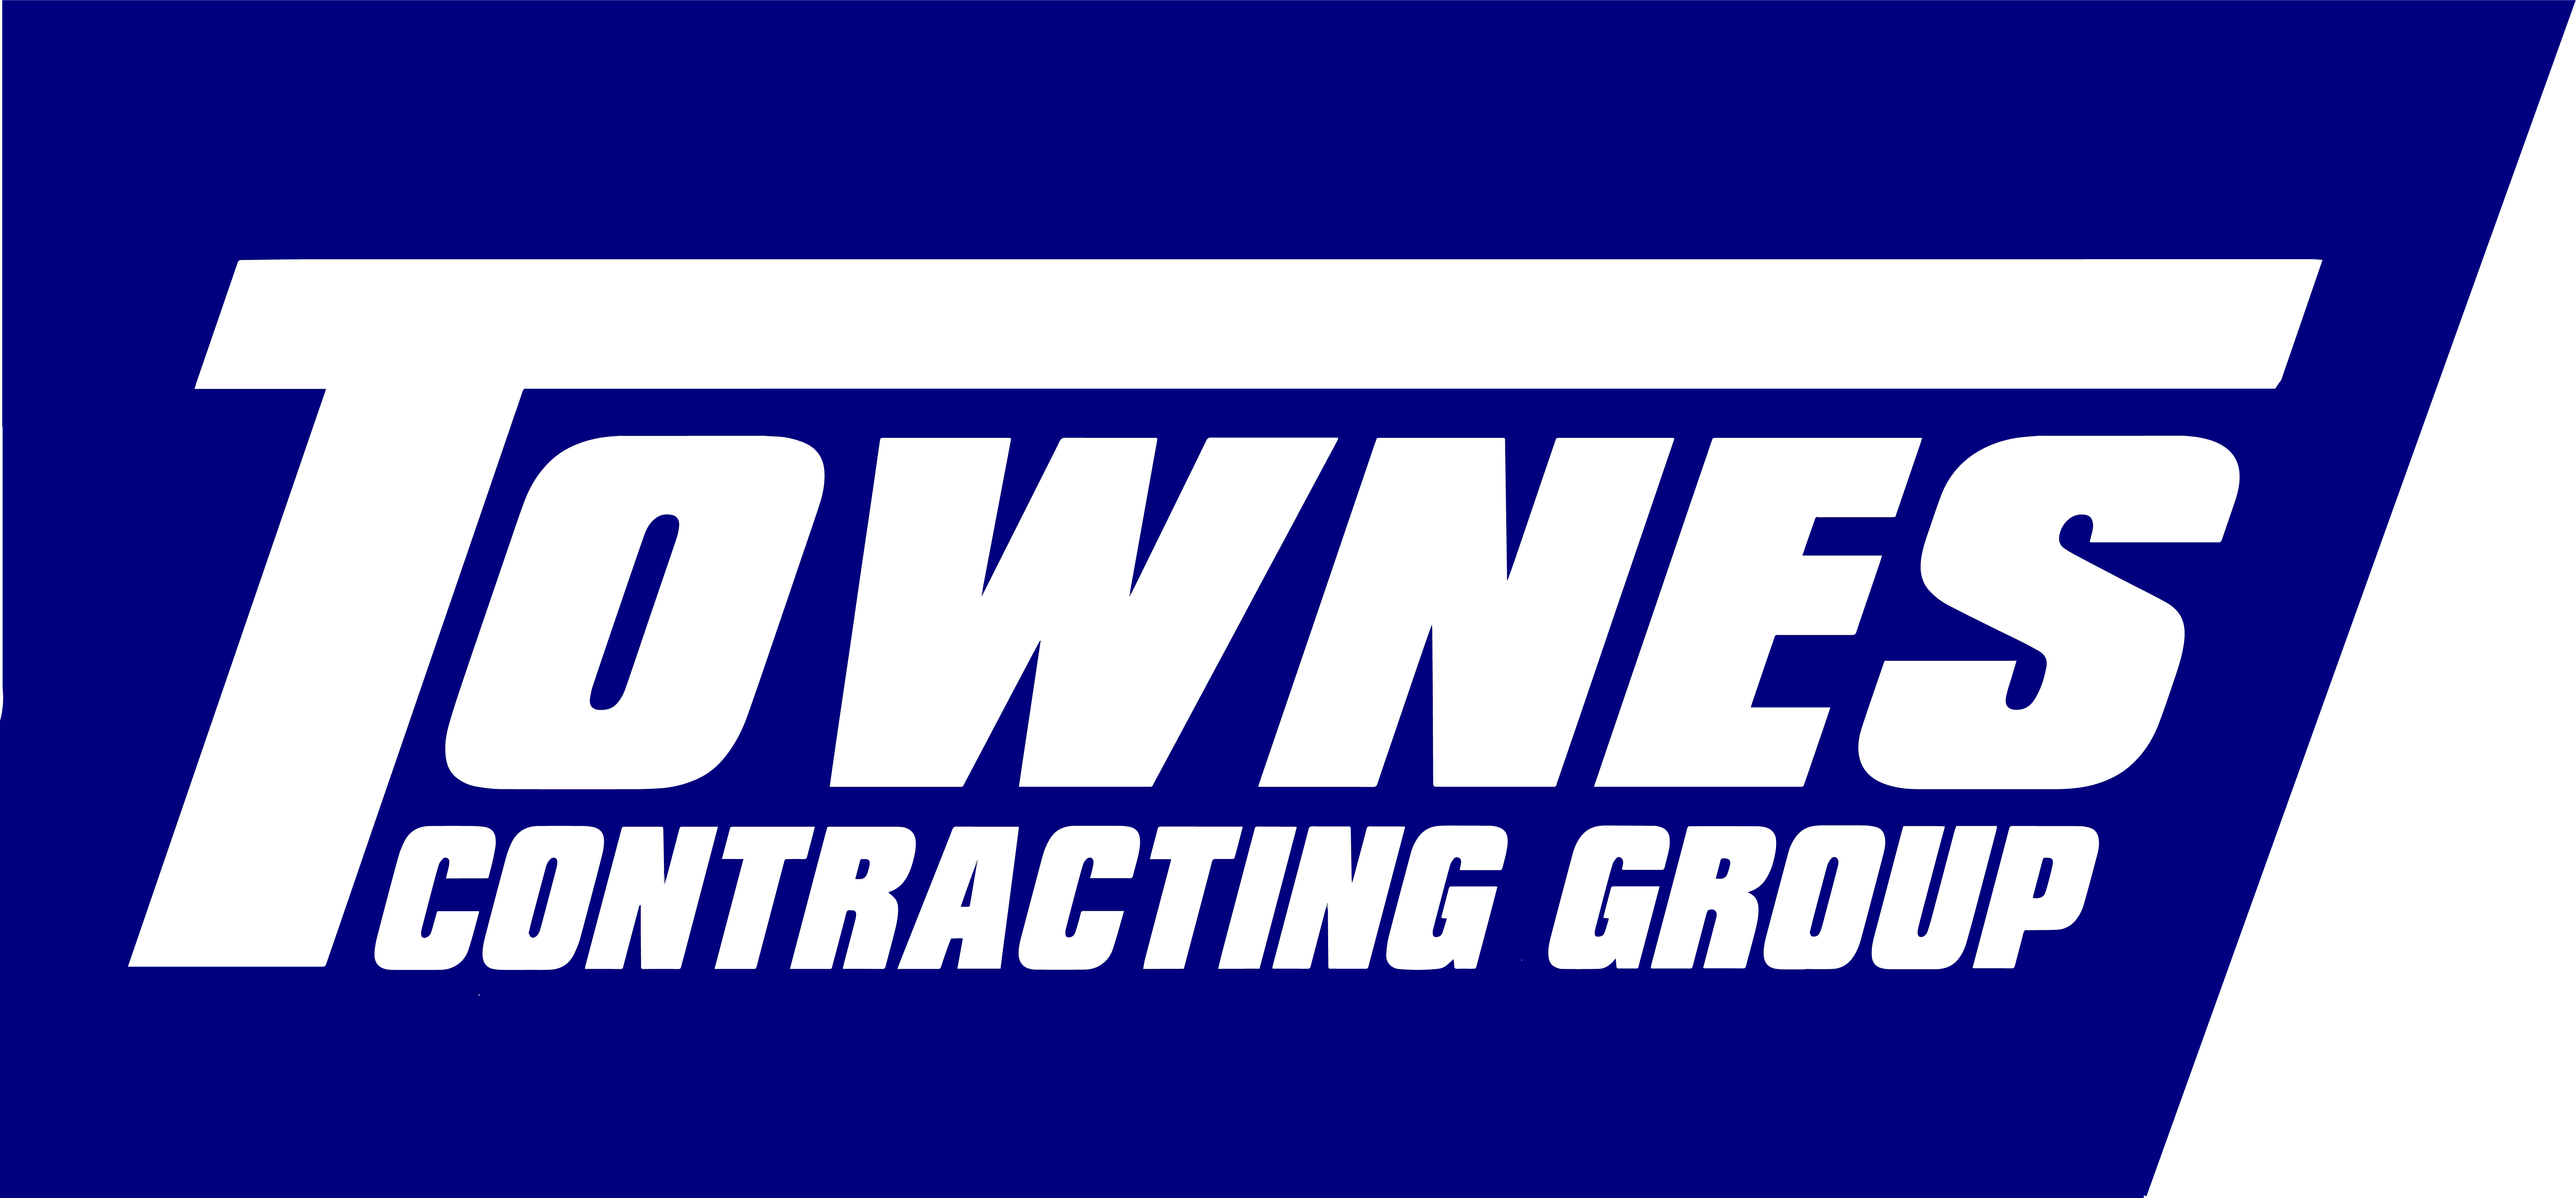 Townes Contracting